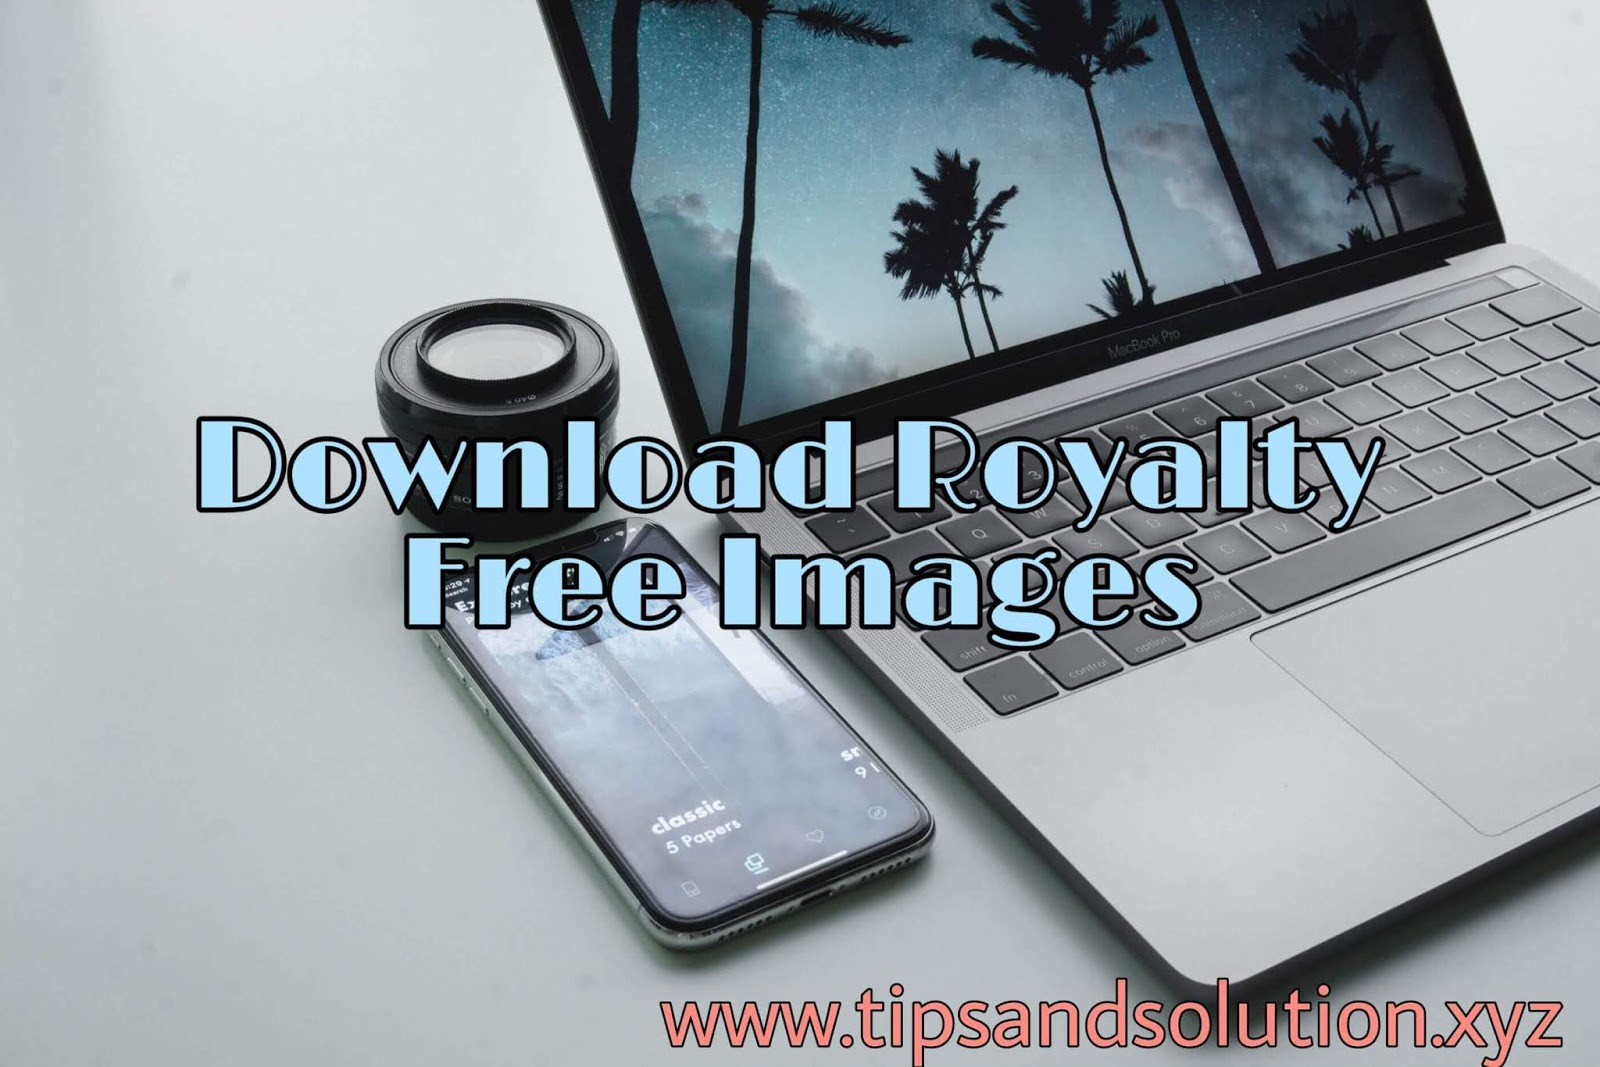 Website Ke Liye Royalty Free Images Kaha Se Download Kare - Tips and Solution